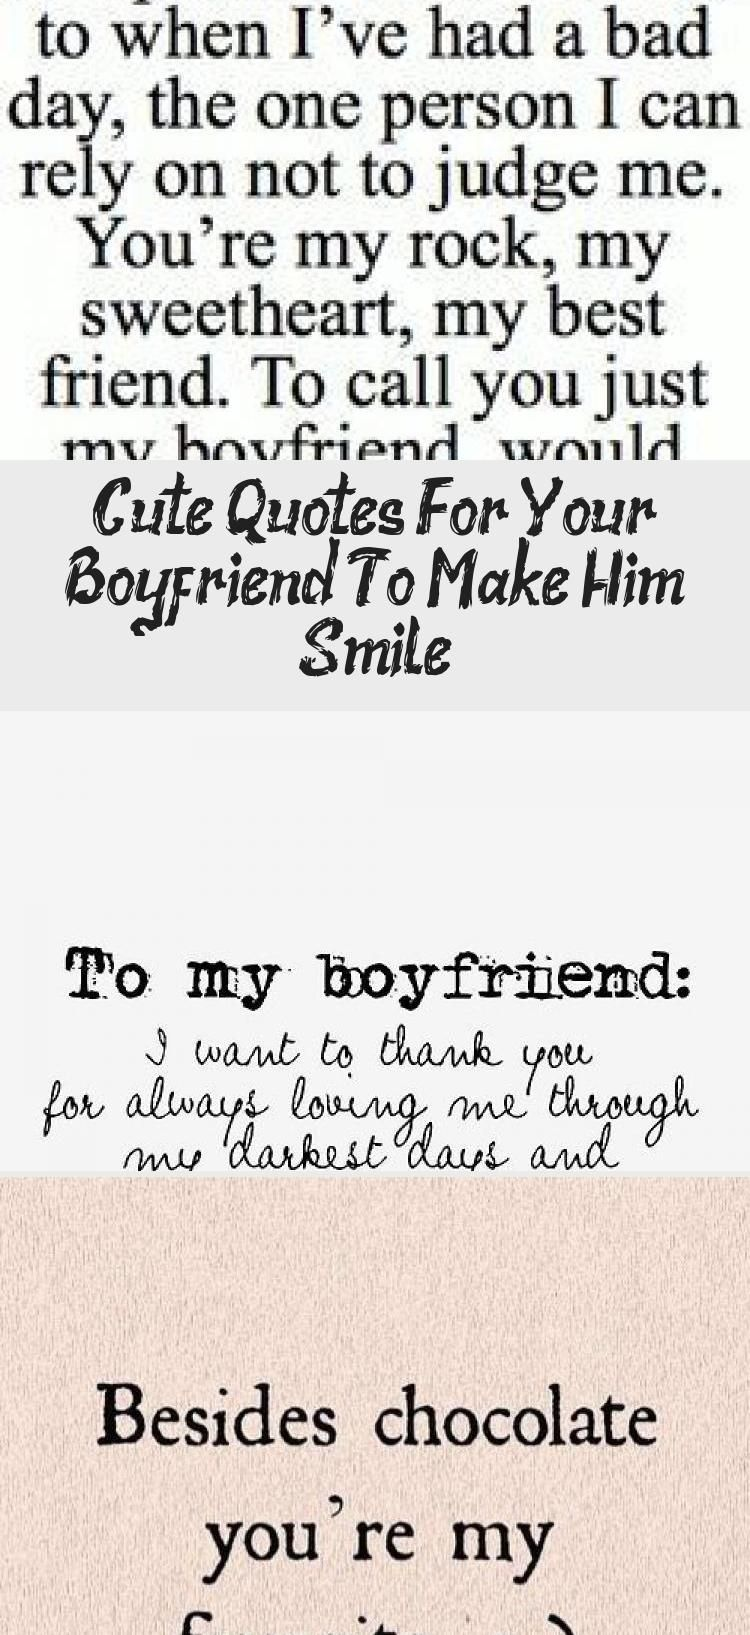 Cute Quotes For Your Boyfriend To Make Him Smile In 2020 Be